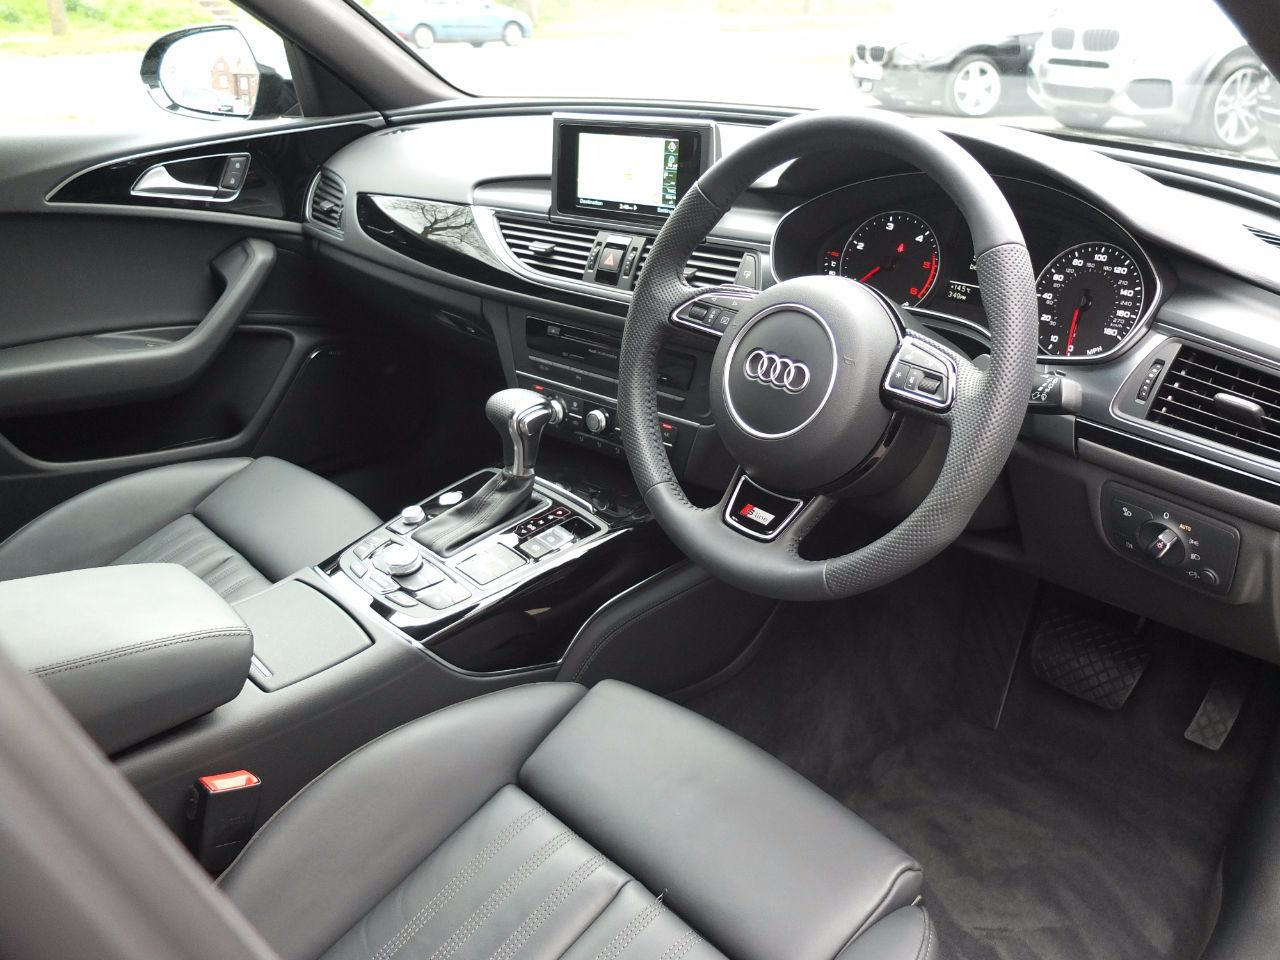 Audi A6 Avant 2.0 TDI Ultra Black Edition S Tronic +++ Spec Estate Diesel Phantom Black Metallic